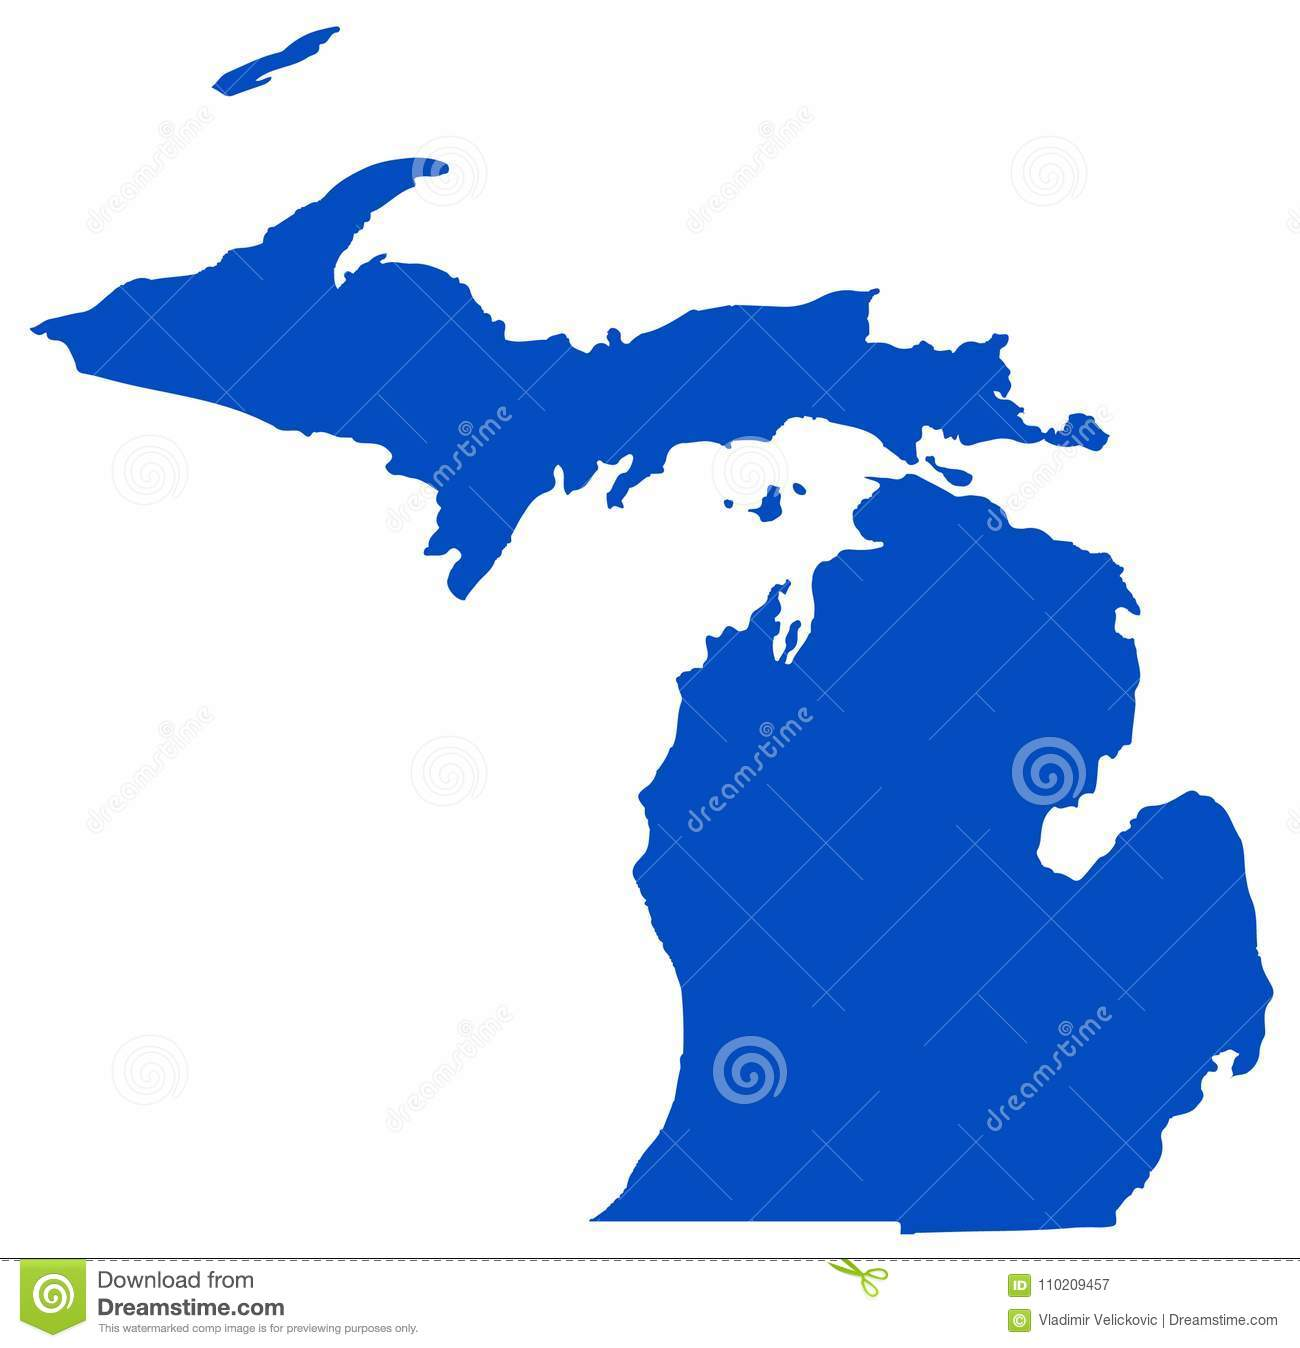 Michigan Map - State In The Great Lakes And Midwestern Regions Of ...